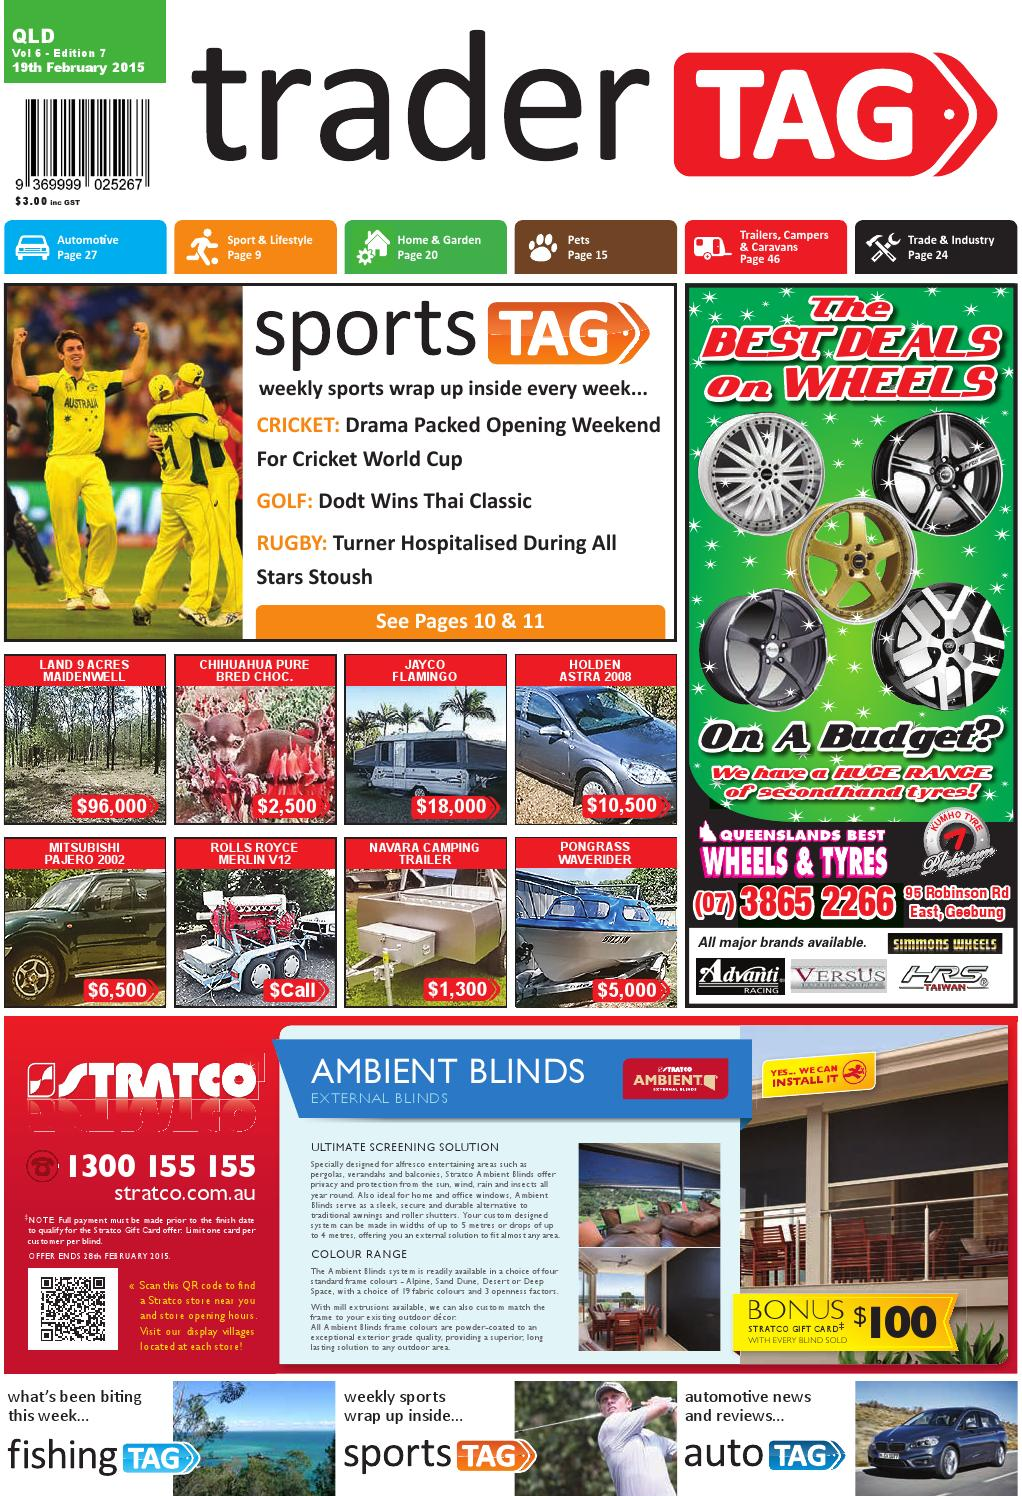 Tradertag Queensland Edition 7 2015 By Design Issuu 2hp Craftsman Garage Door Opener What Is Up With Nev